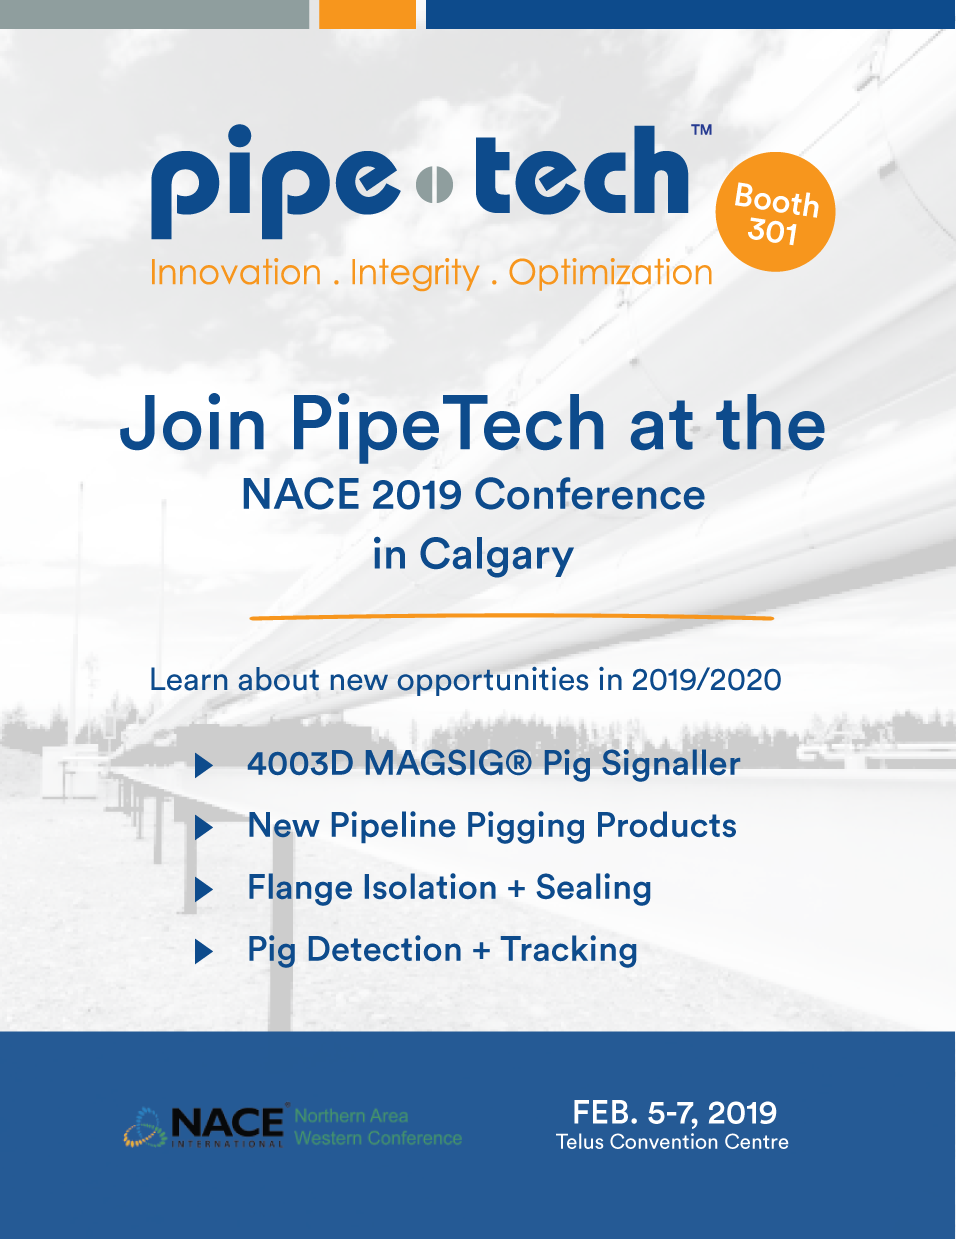 2019 NACE International Conference Invitation - Pipetech Corporation